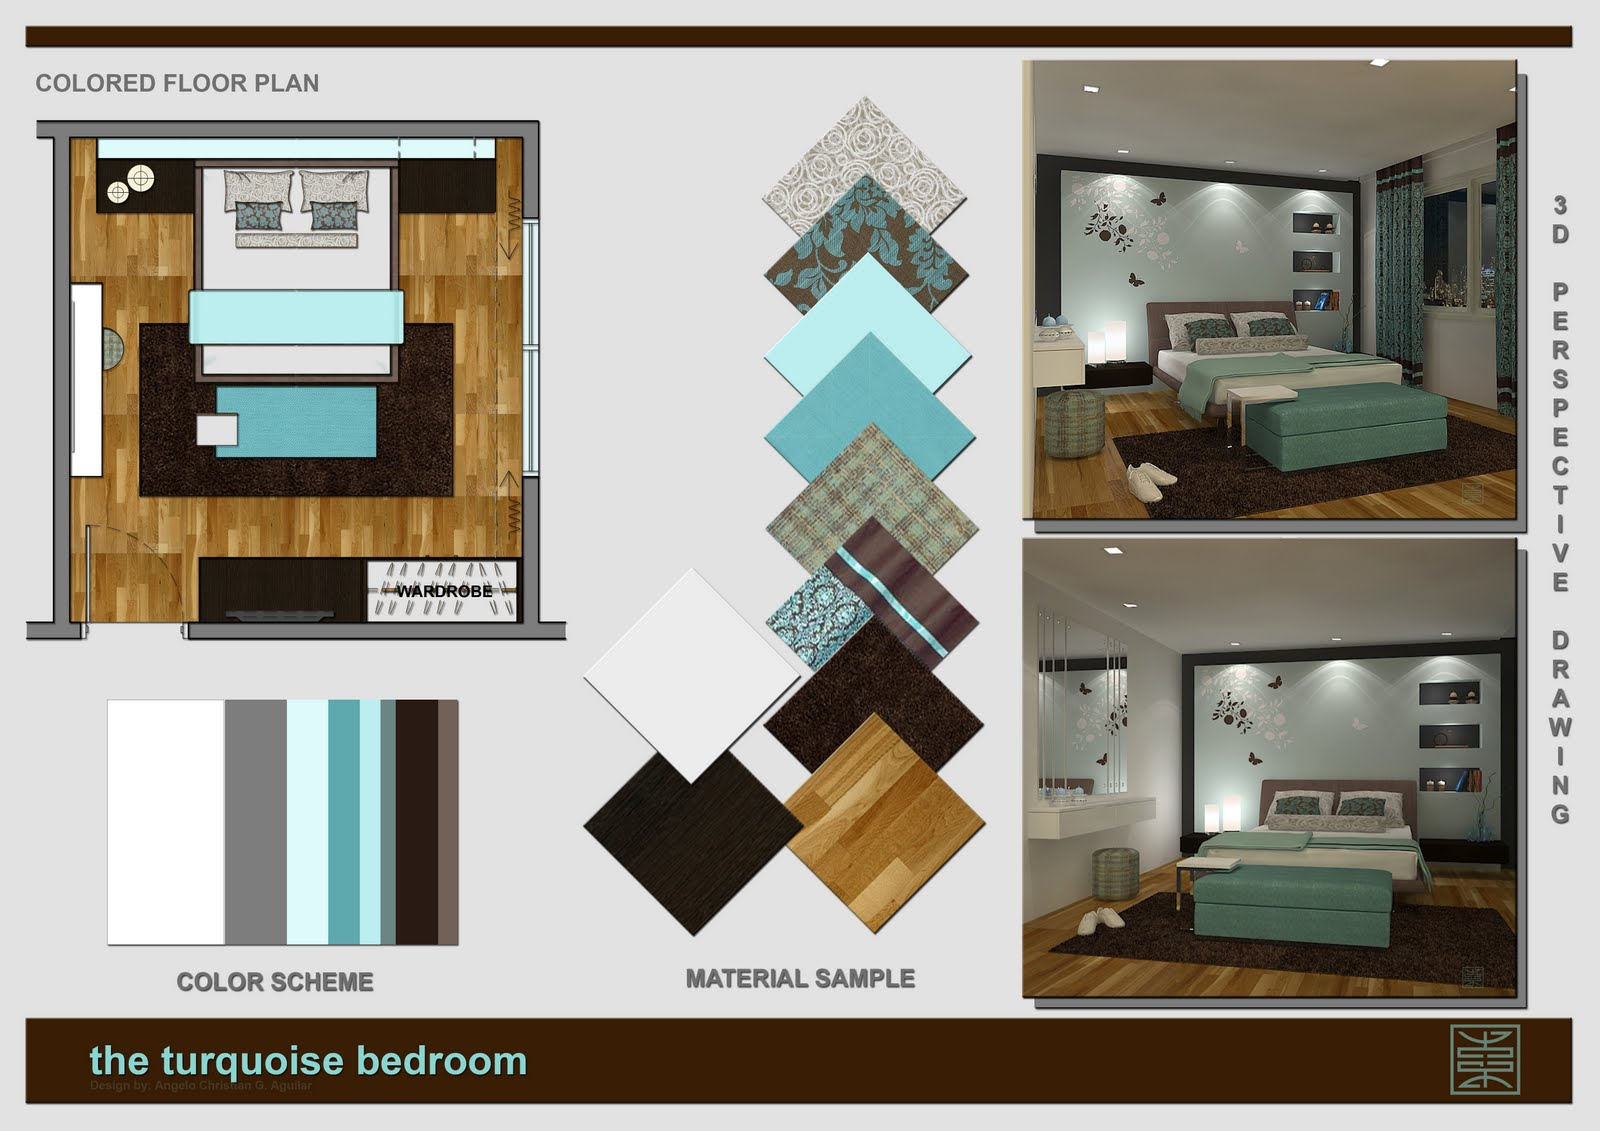 Angelo aguilar interior design portfolio the turquoise for Interior design portfolio